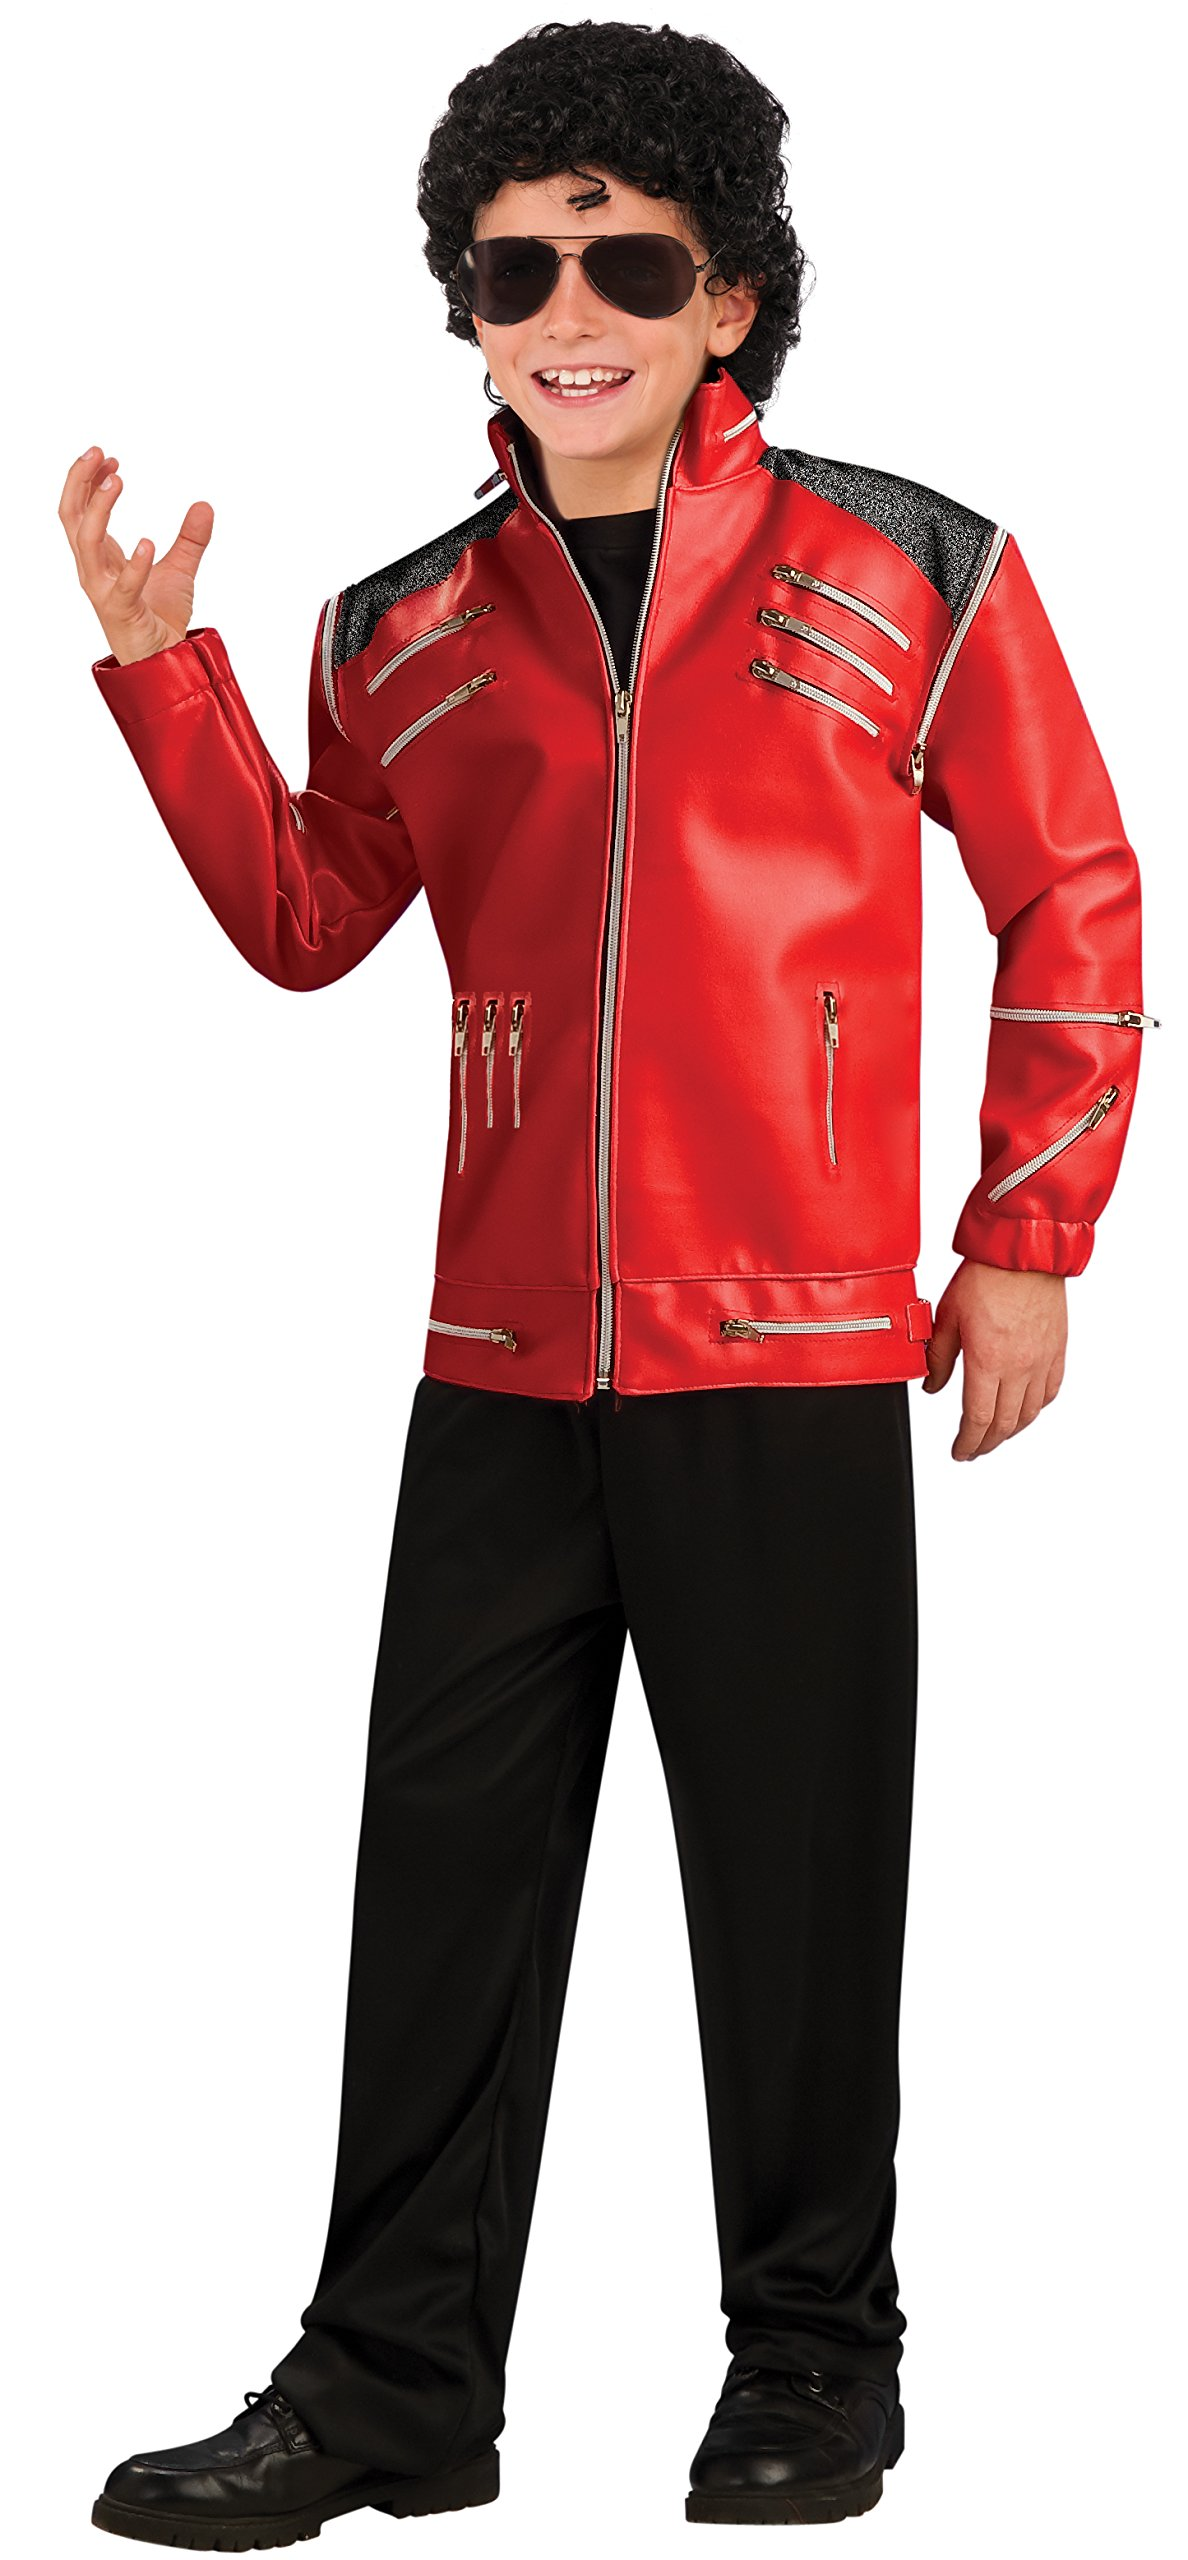 Michael Jackson Child's Deluxe Red Beat It Zipper Jacket Costume Accessory, Small